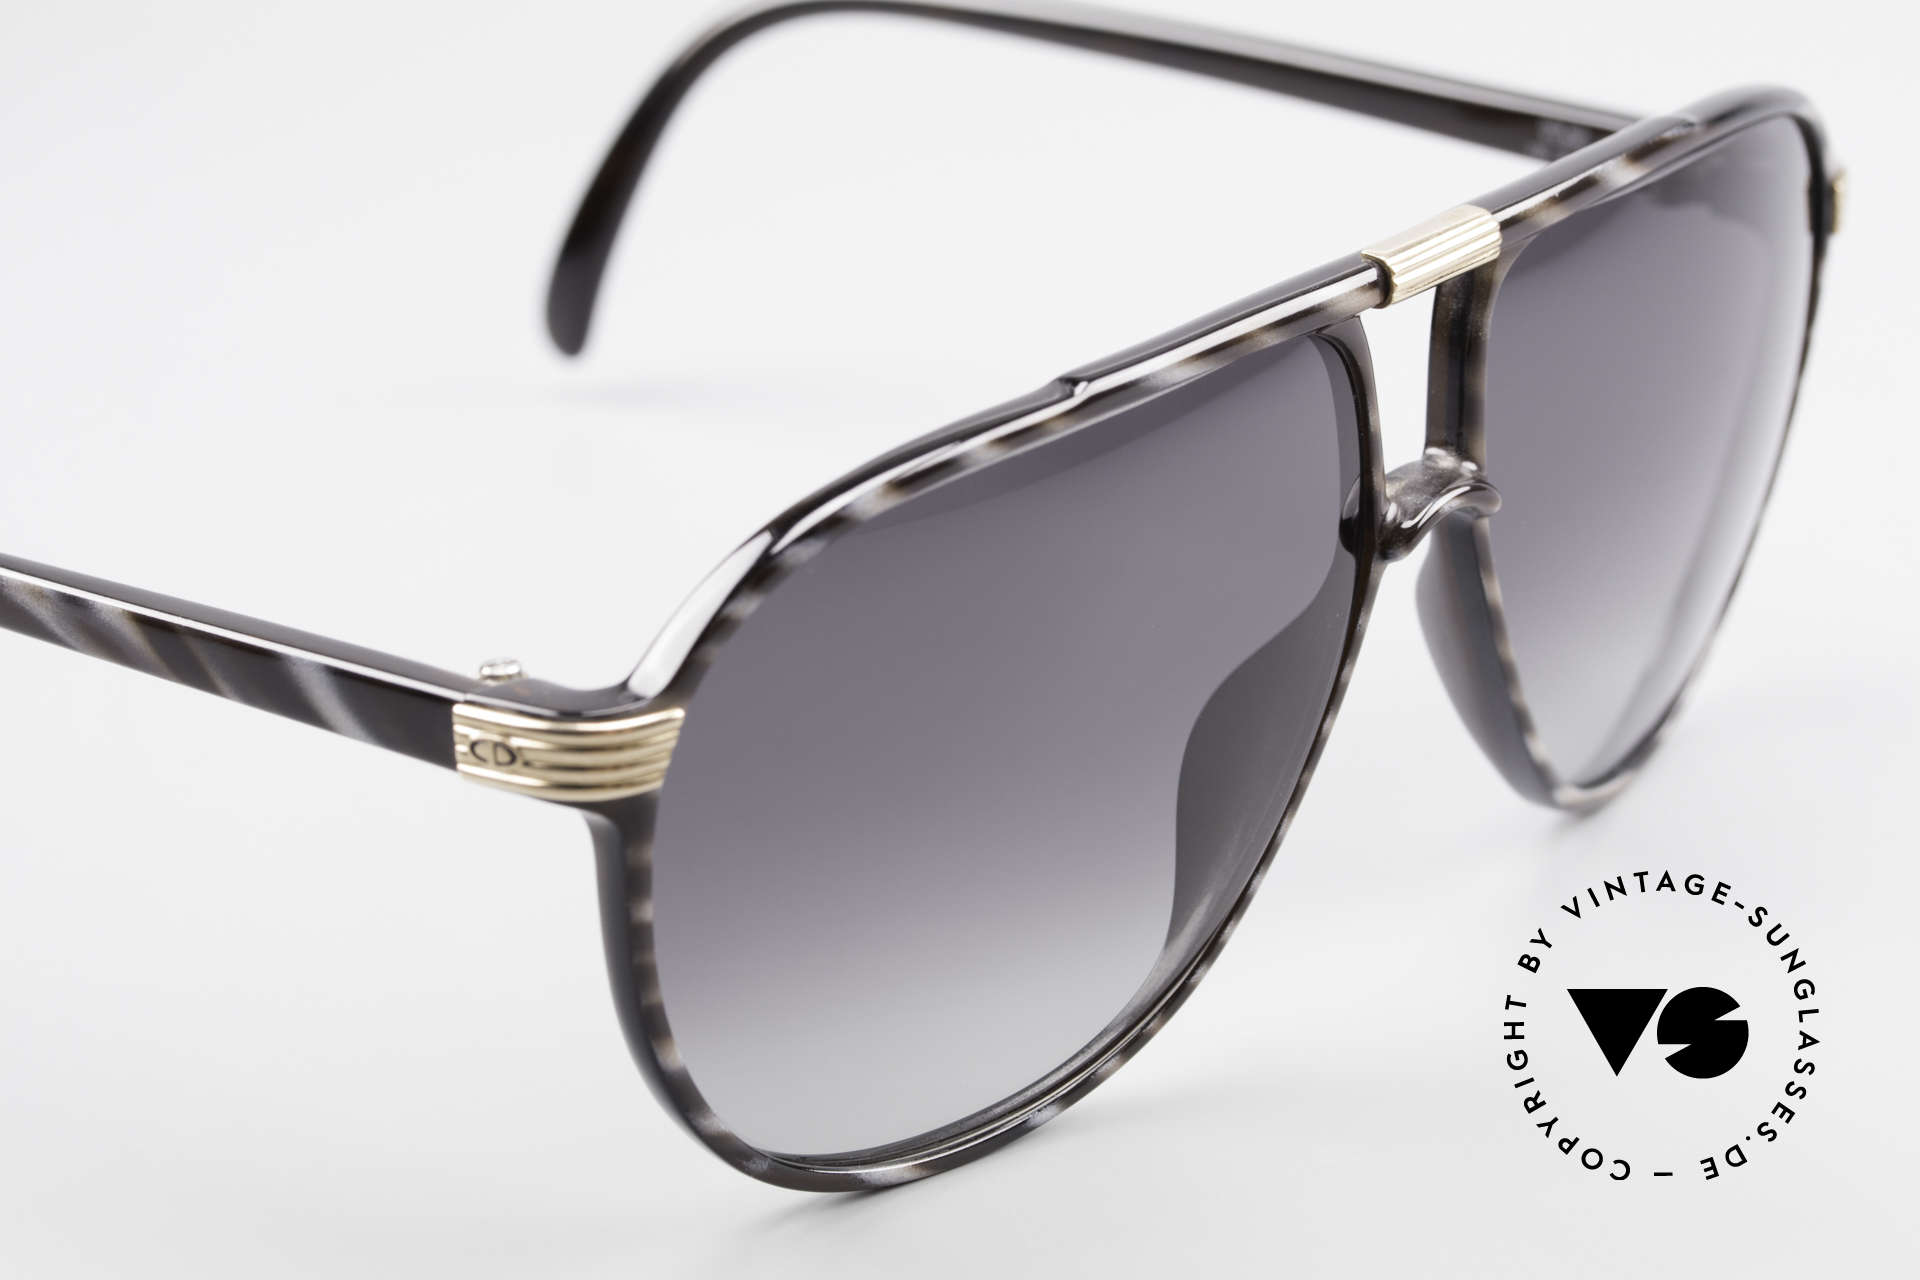 Christian Dior 2300 Optyl Monsieur Sunglasses, gray-gradient sun lenses for 100% UV protection, Made for Men